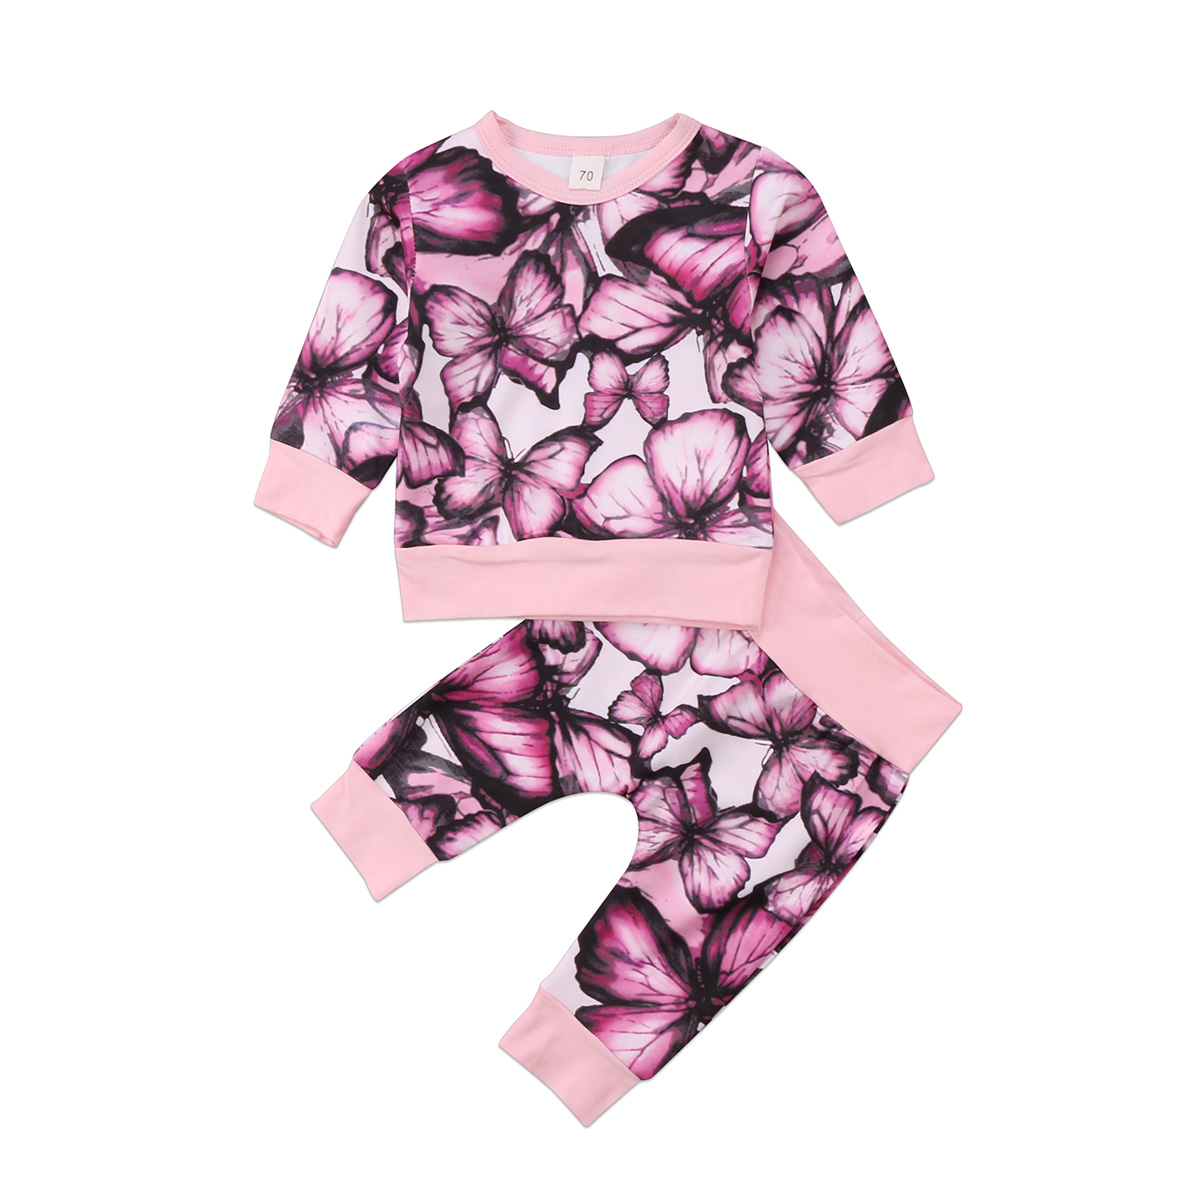 Fashion kid baby girls clothes 2pcs set Newborn infant Baby Girls Butterfly print Outfits Tops T Shirt+Pants Cotton Clothes Set